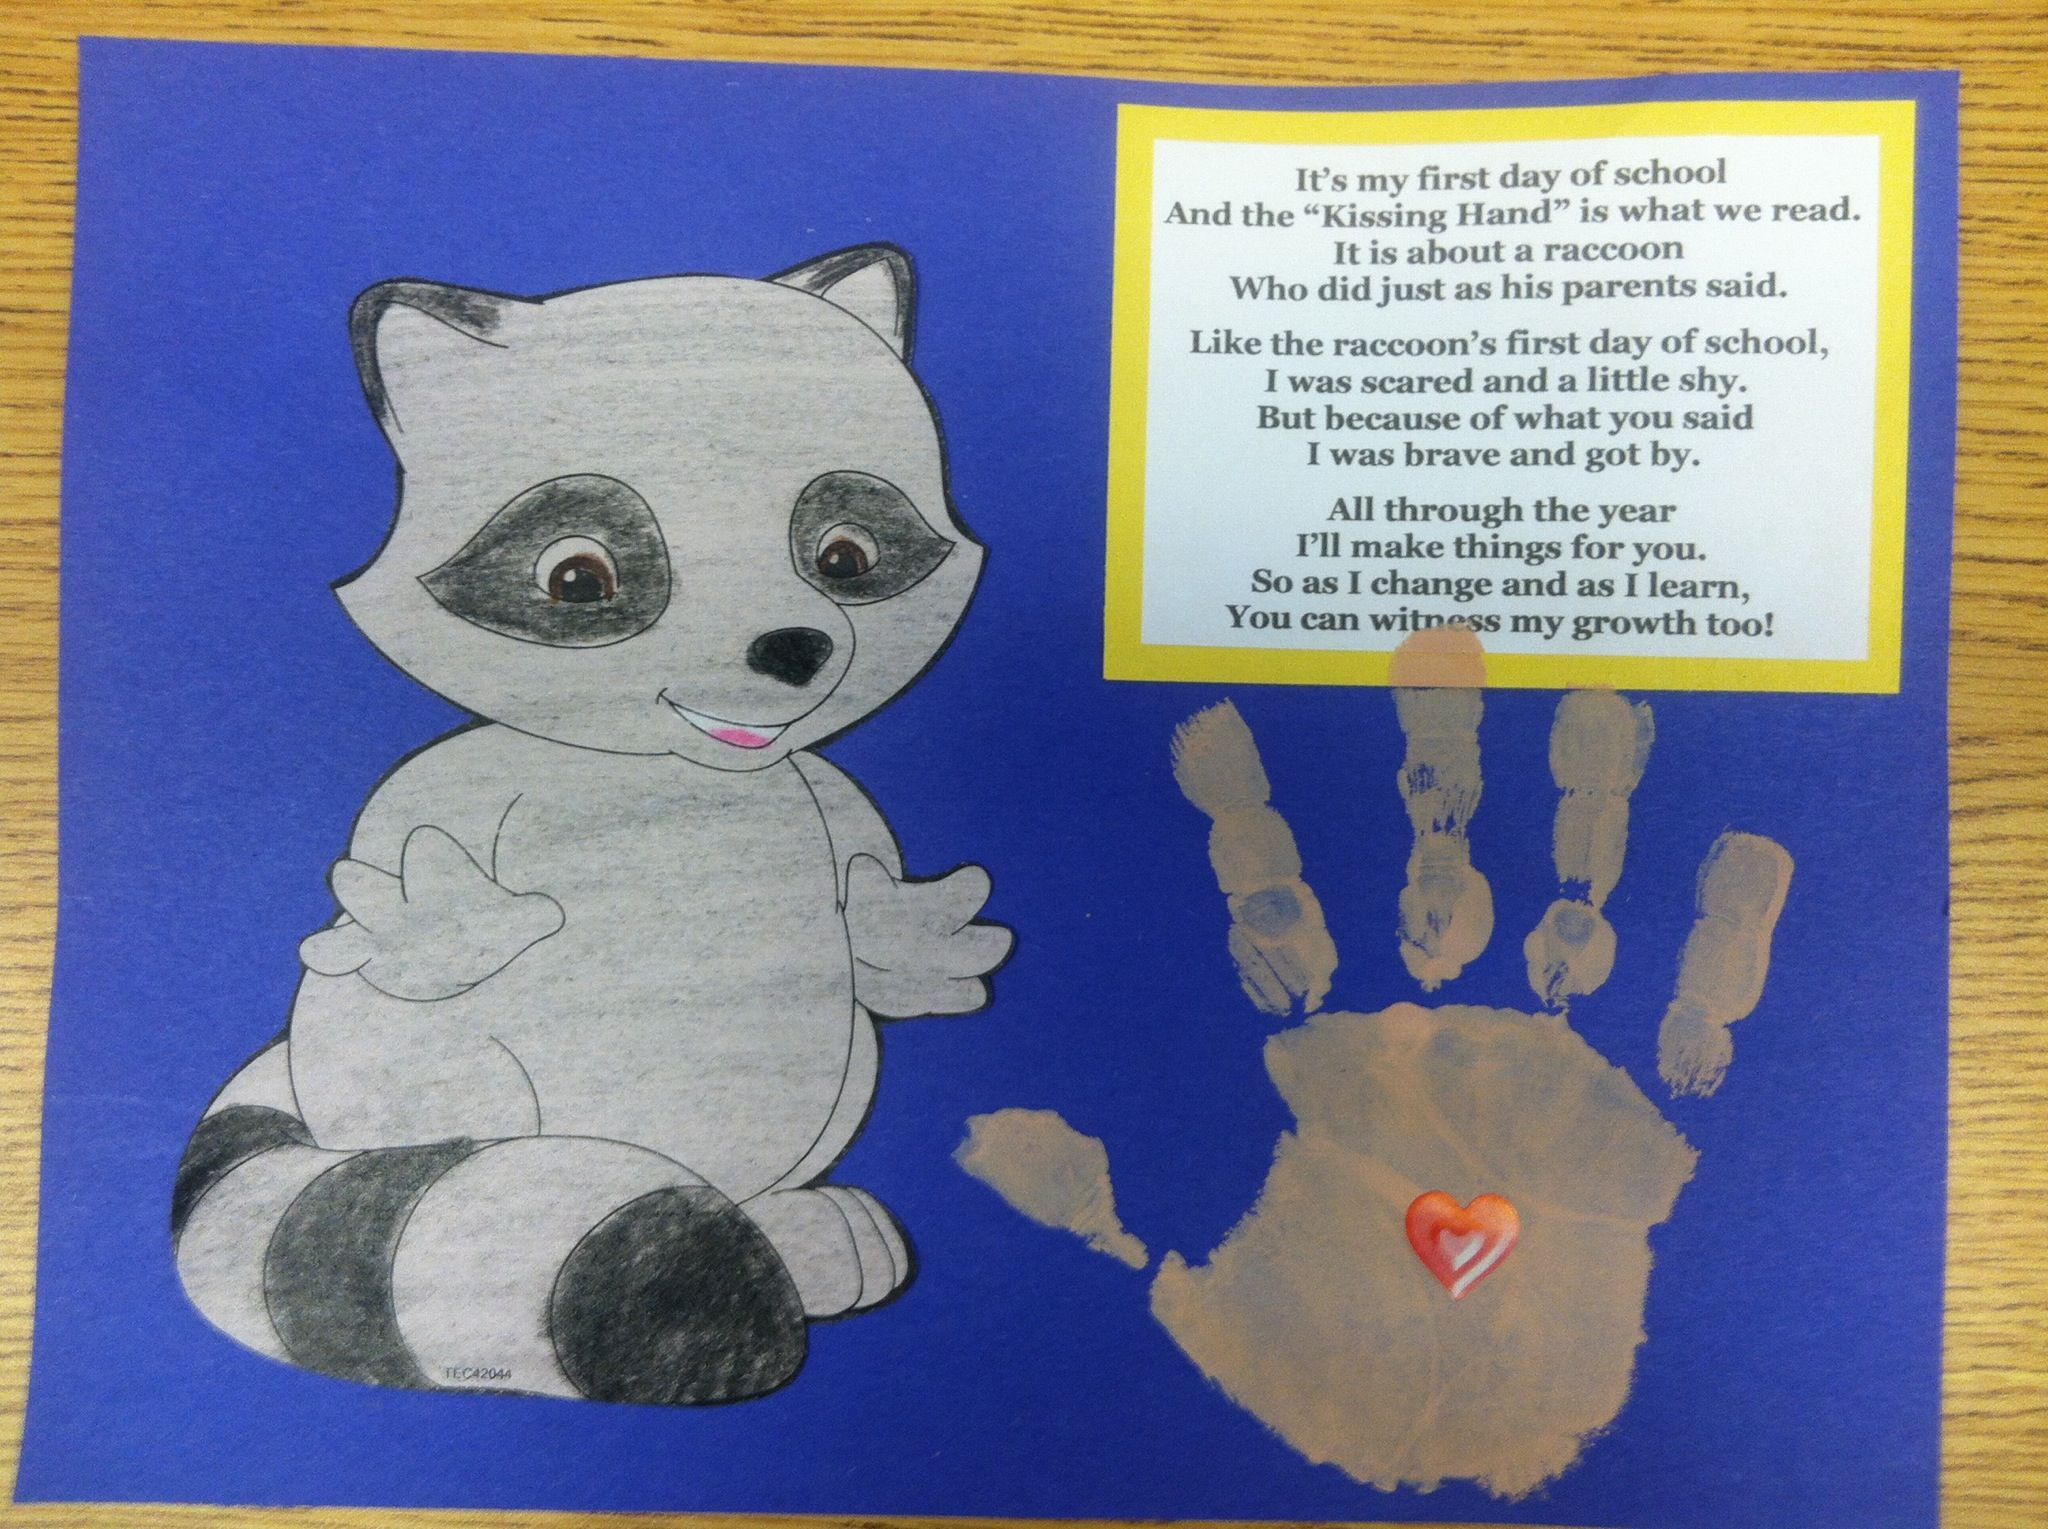 Raccoon Chester The Kissing Hand Arts Amp Crafts Project I Used Our